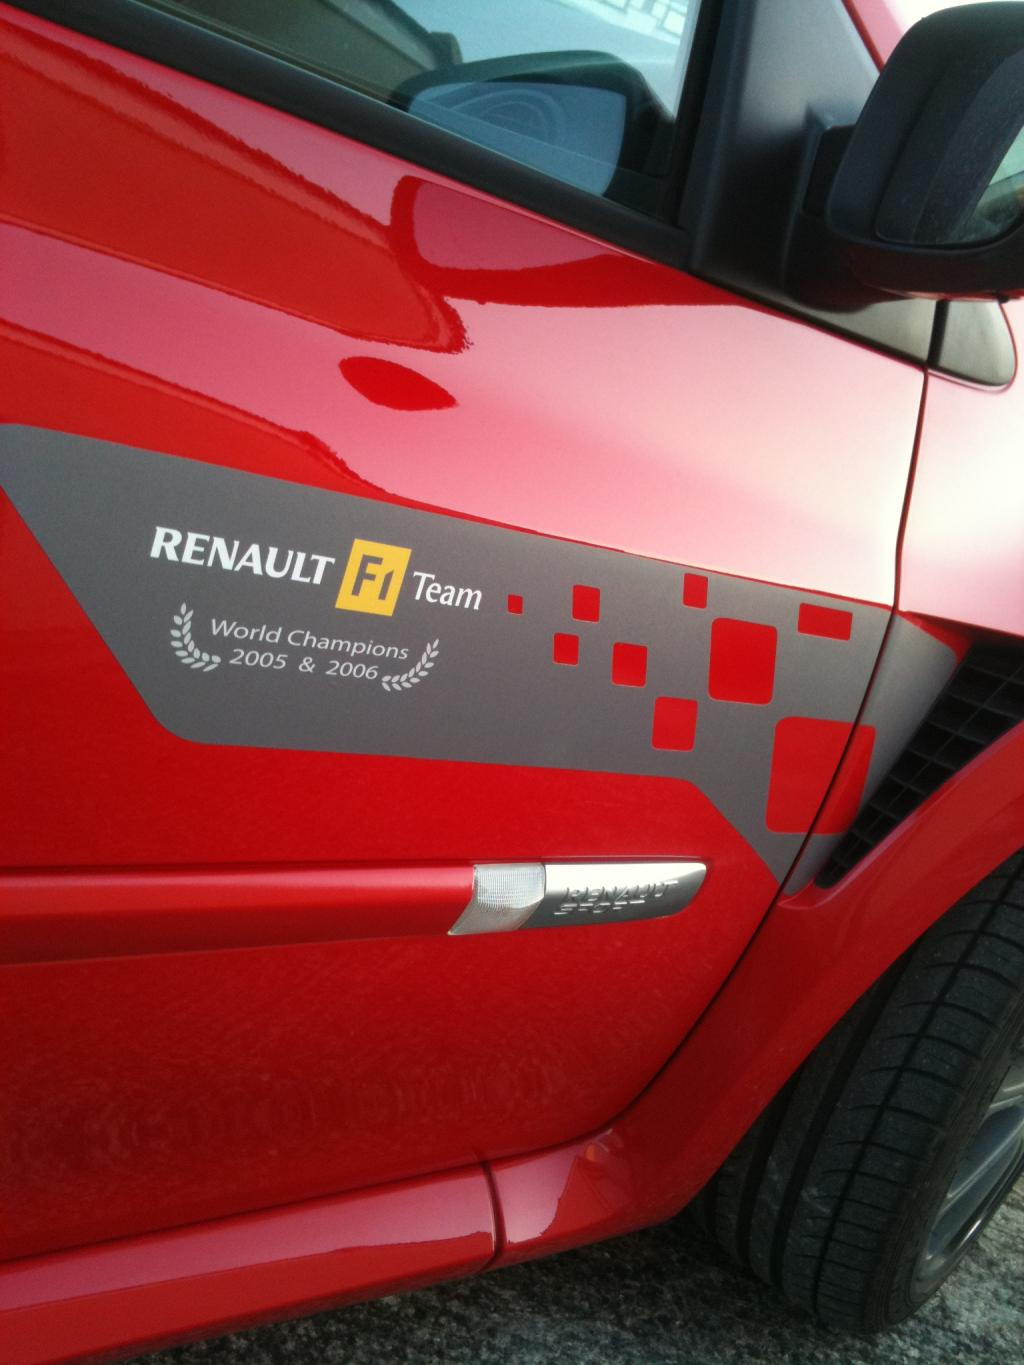 Vends Sticker Renault Replica - Stripping - et autres modeles  Img_0712-2644b84